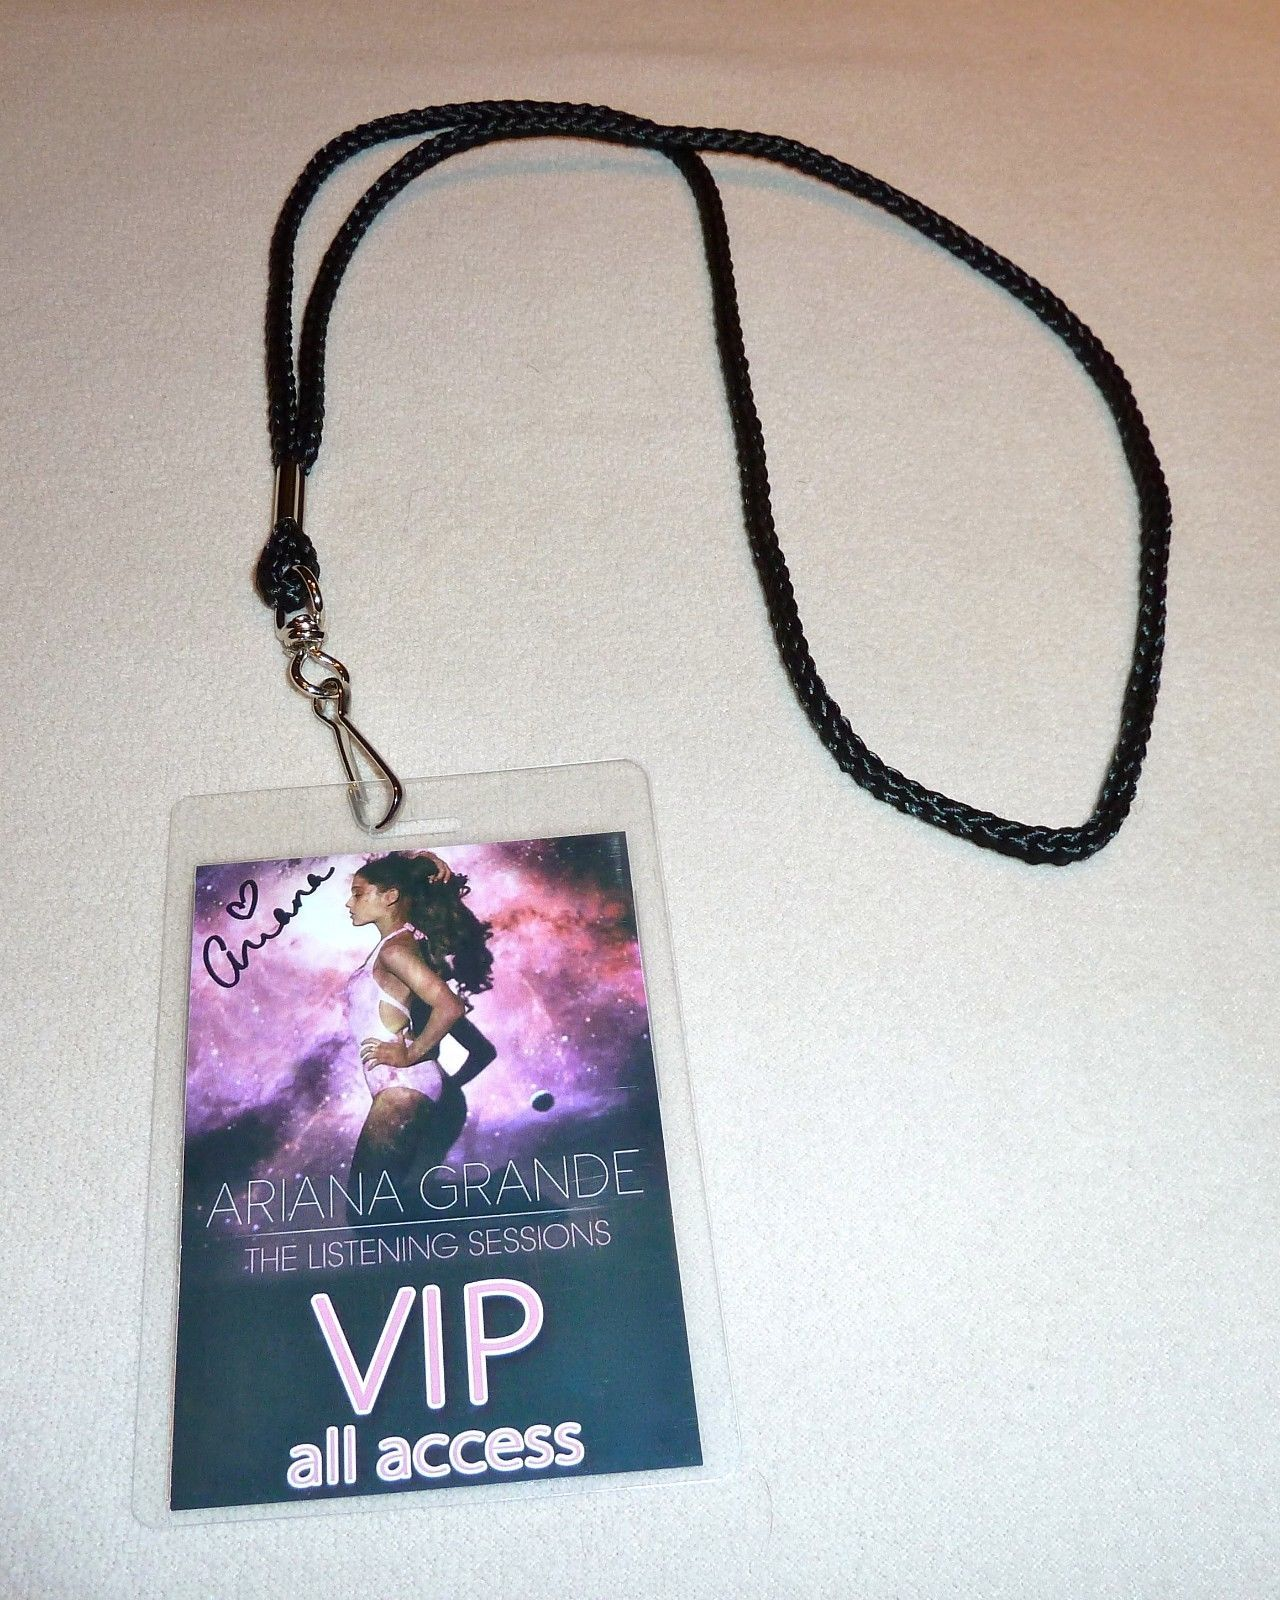 ARIANA GRANDE SIGNED THE LISTENING SESSIONS VIP ALL ACCESS